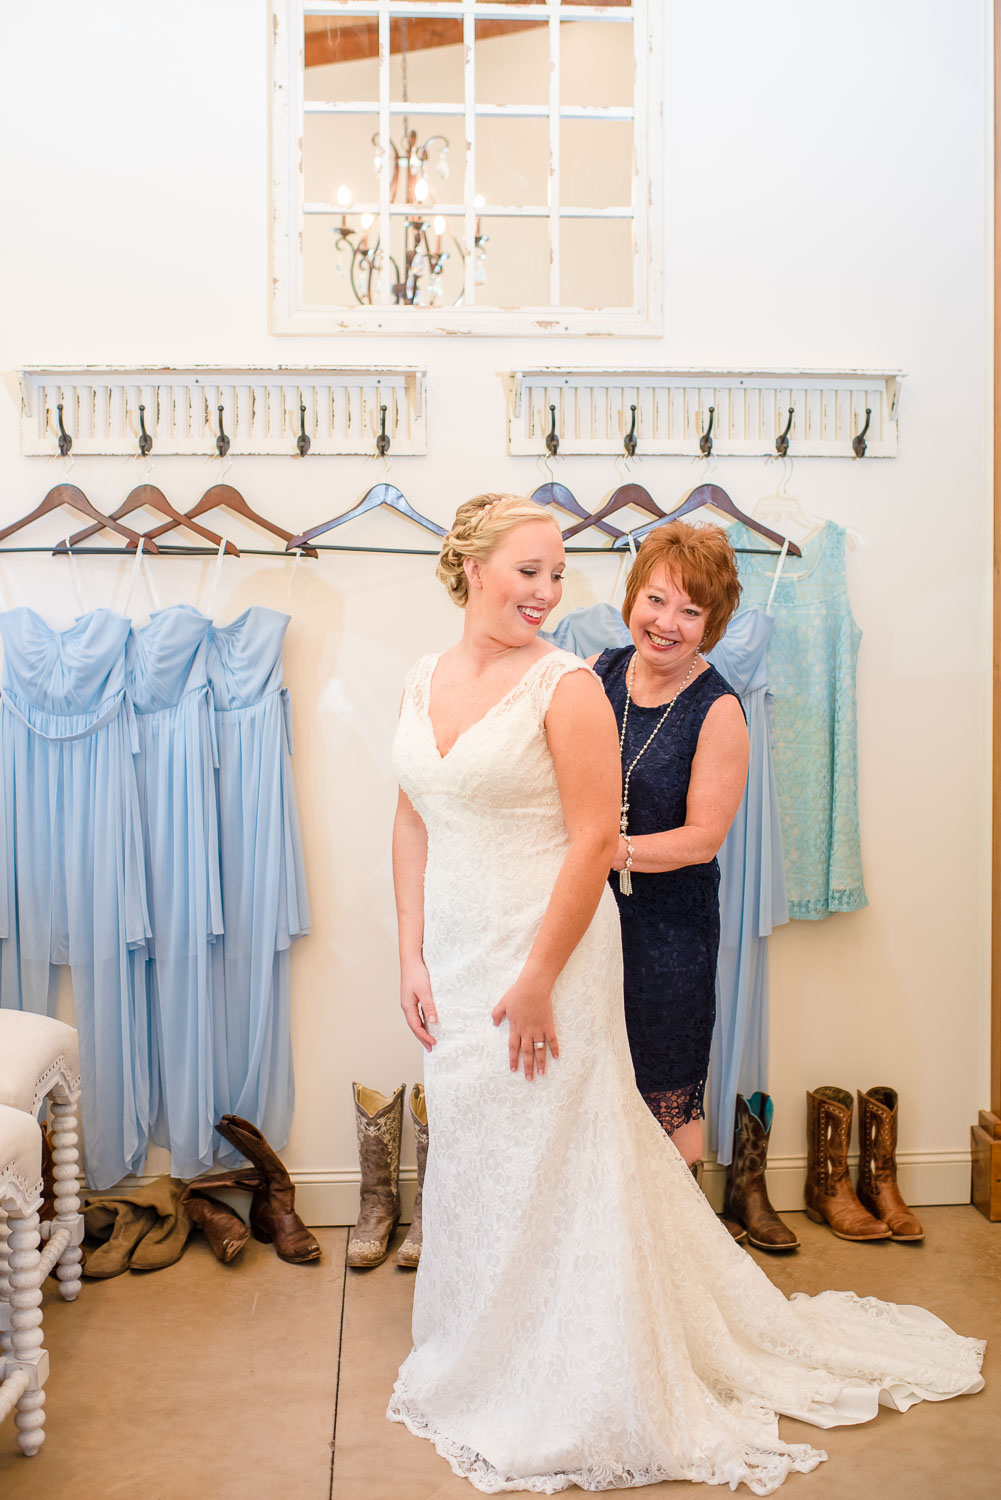 mother of the bride zipping bride's dress